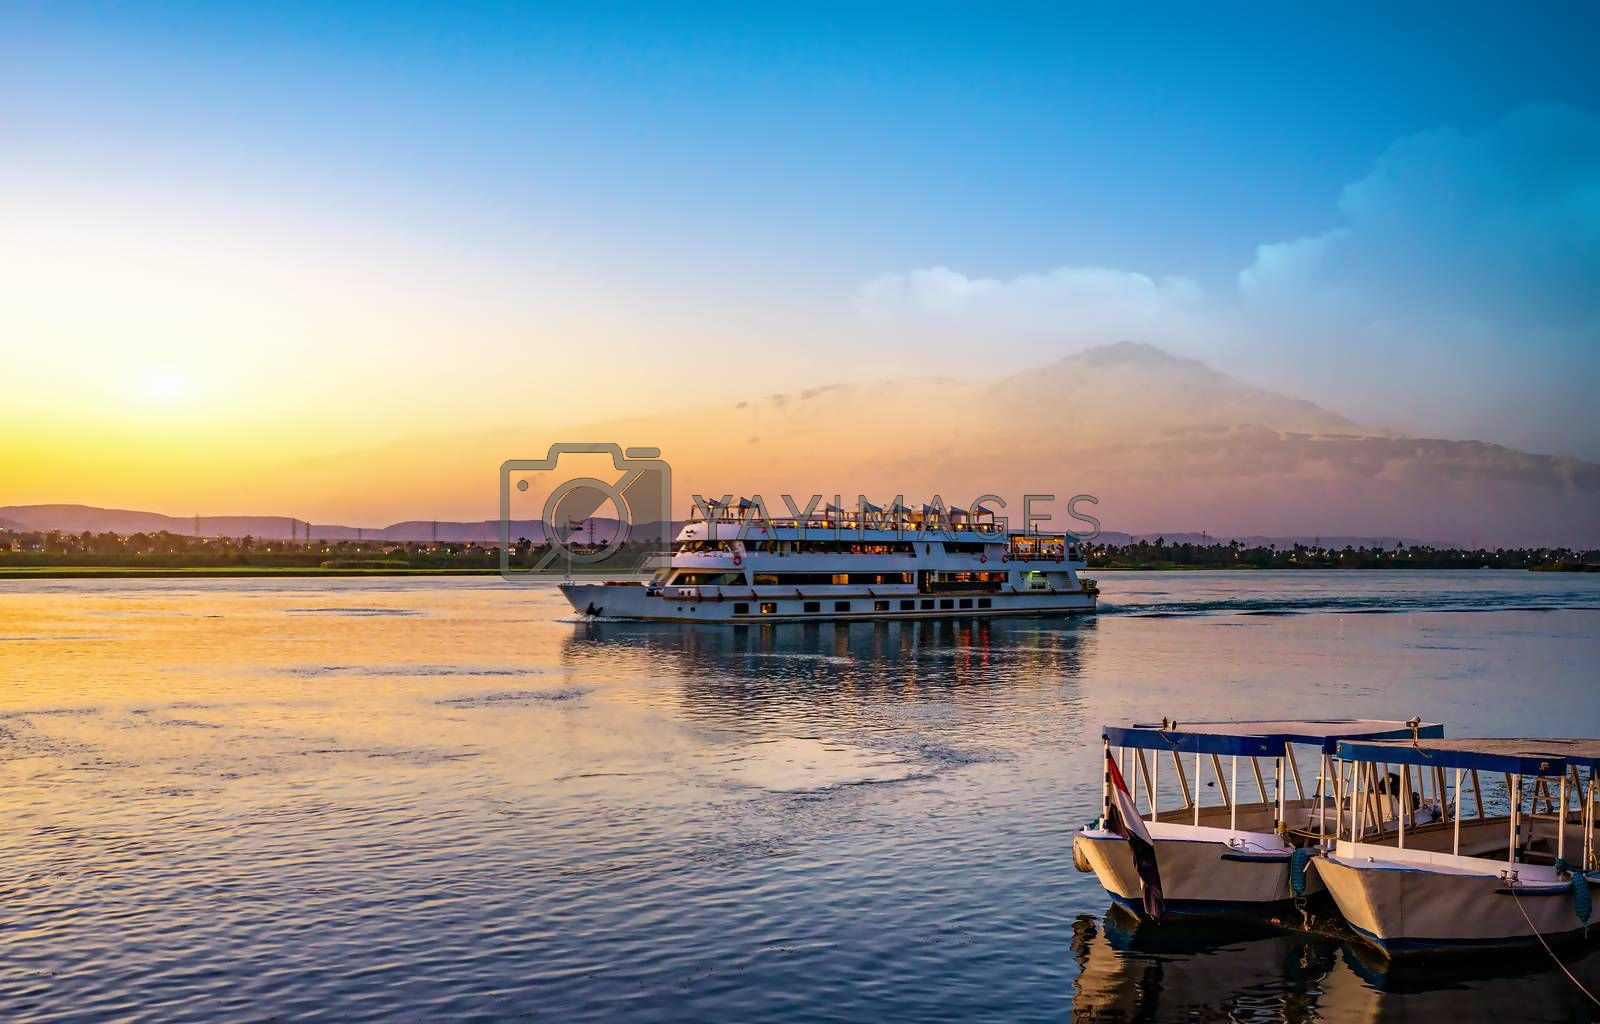 River Nile and ship at sunset in Aswan